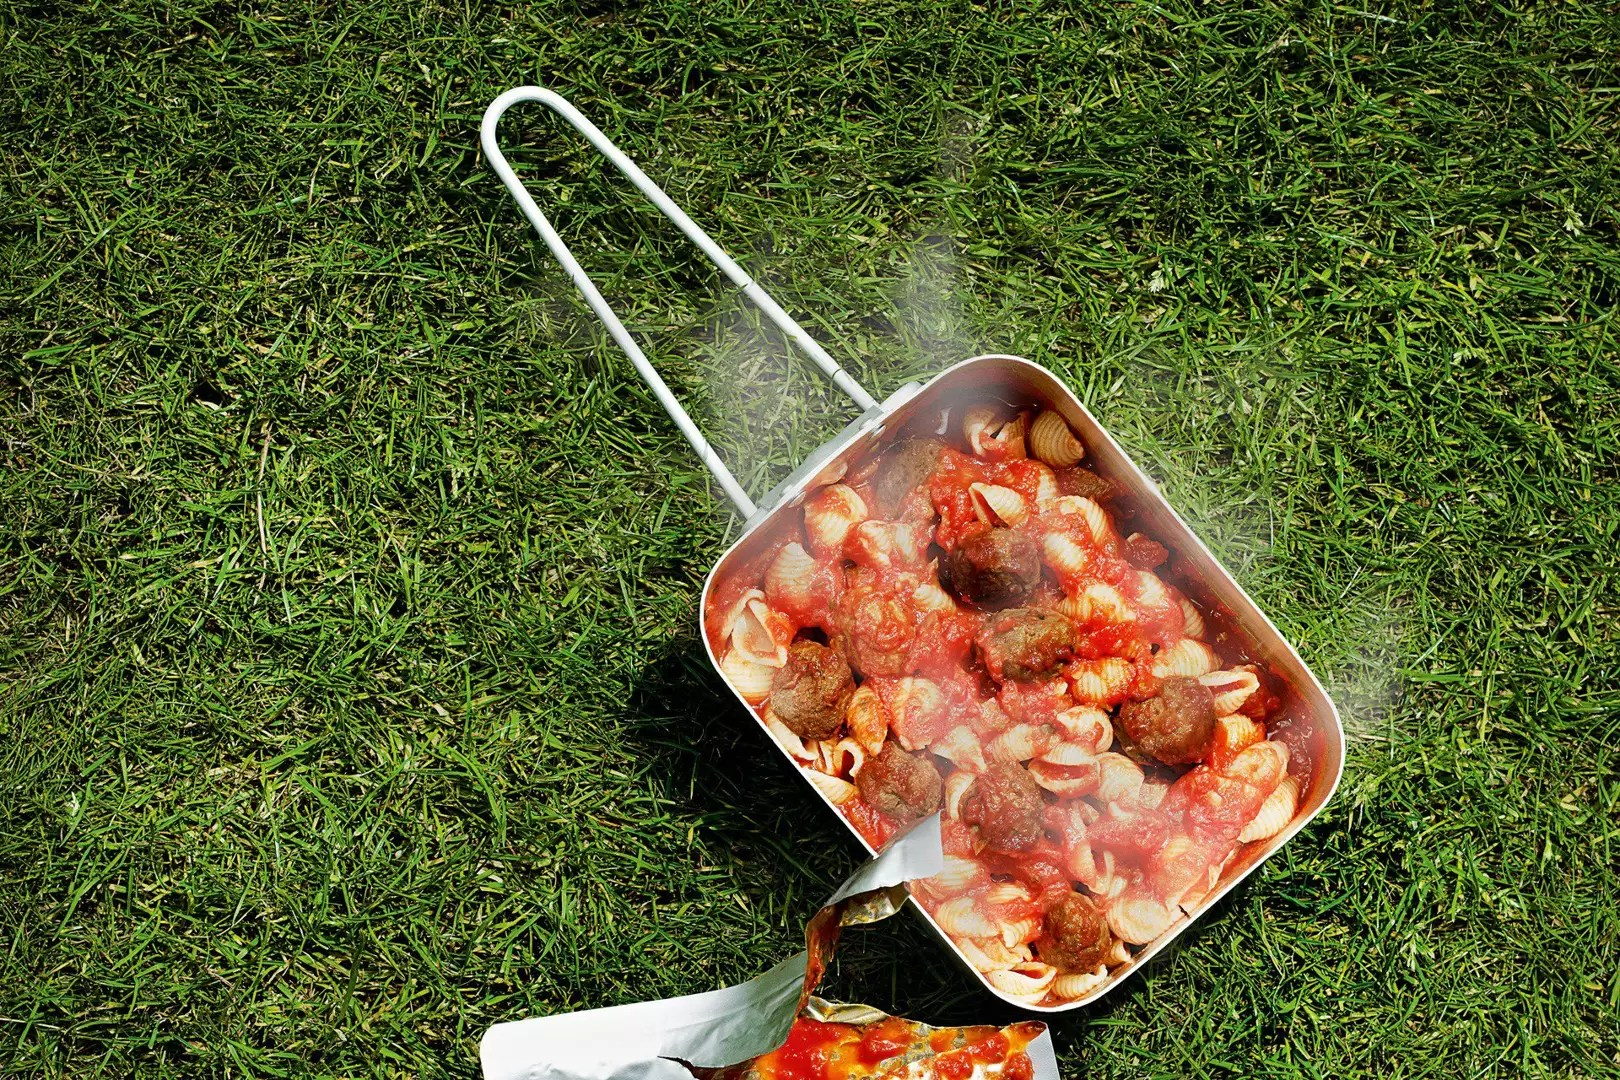 Kit De Cuisine Pour Camping Camping Cuisine Best Self Heating Meals Consumed And Rated Wired Uk